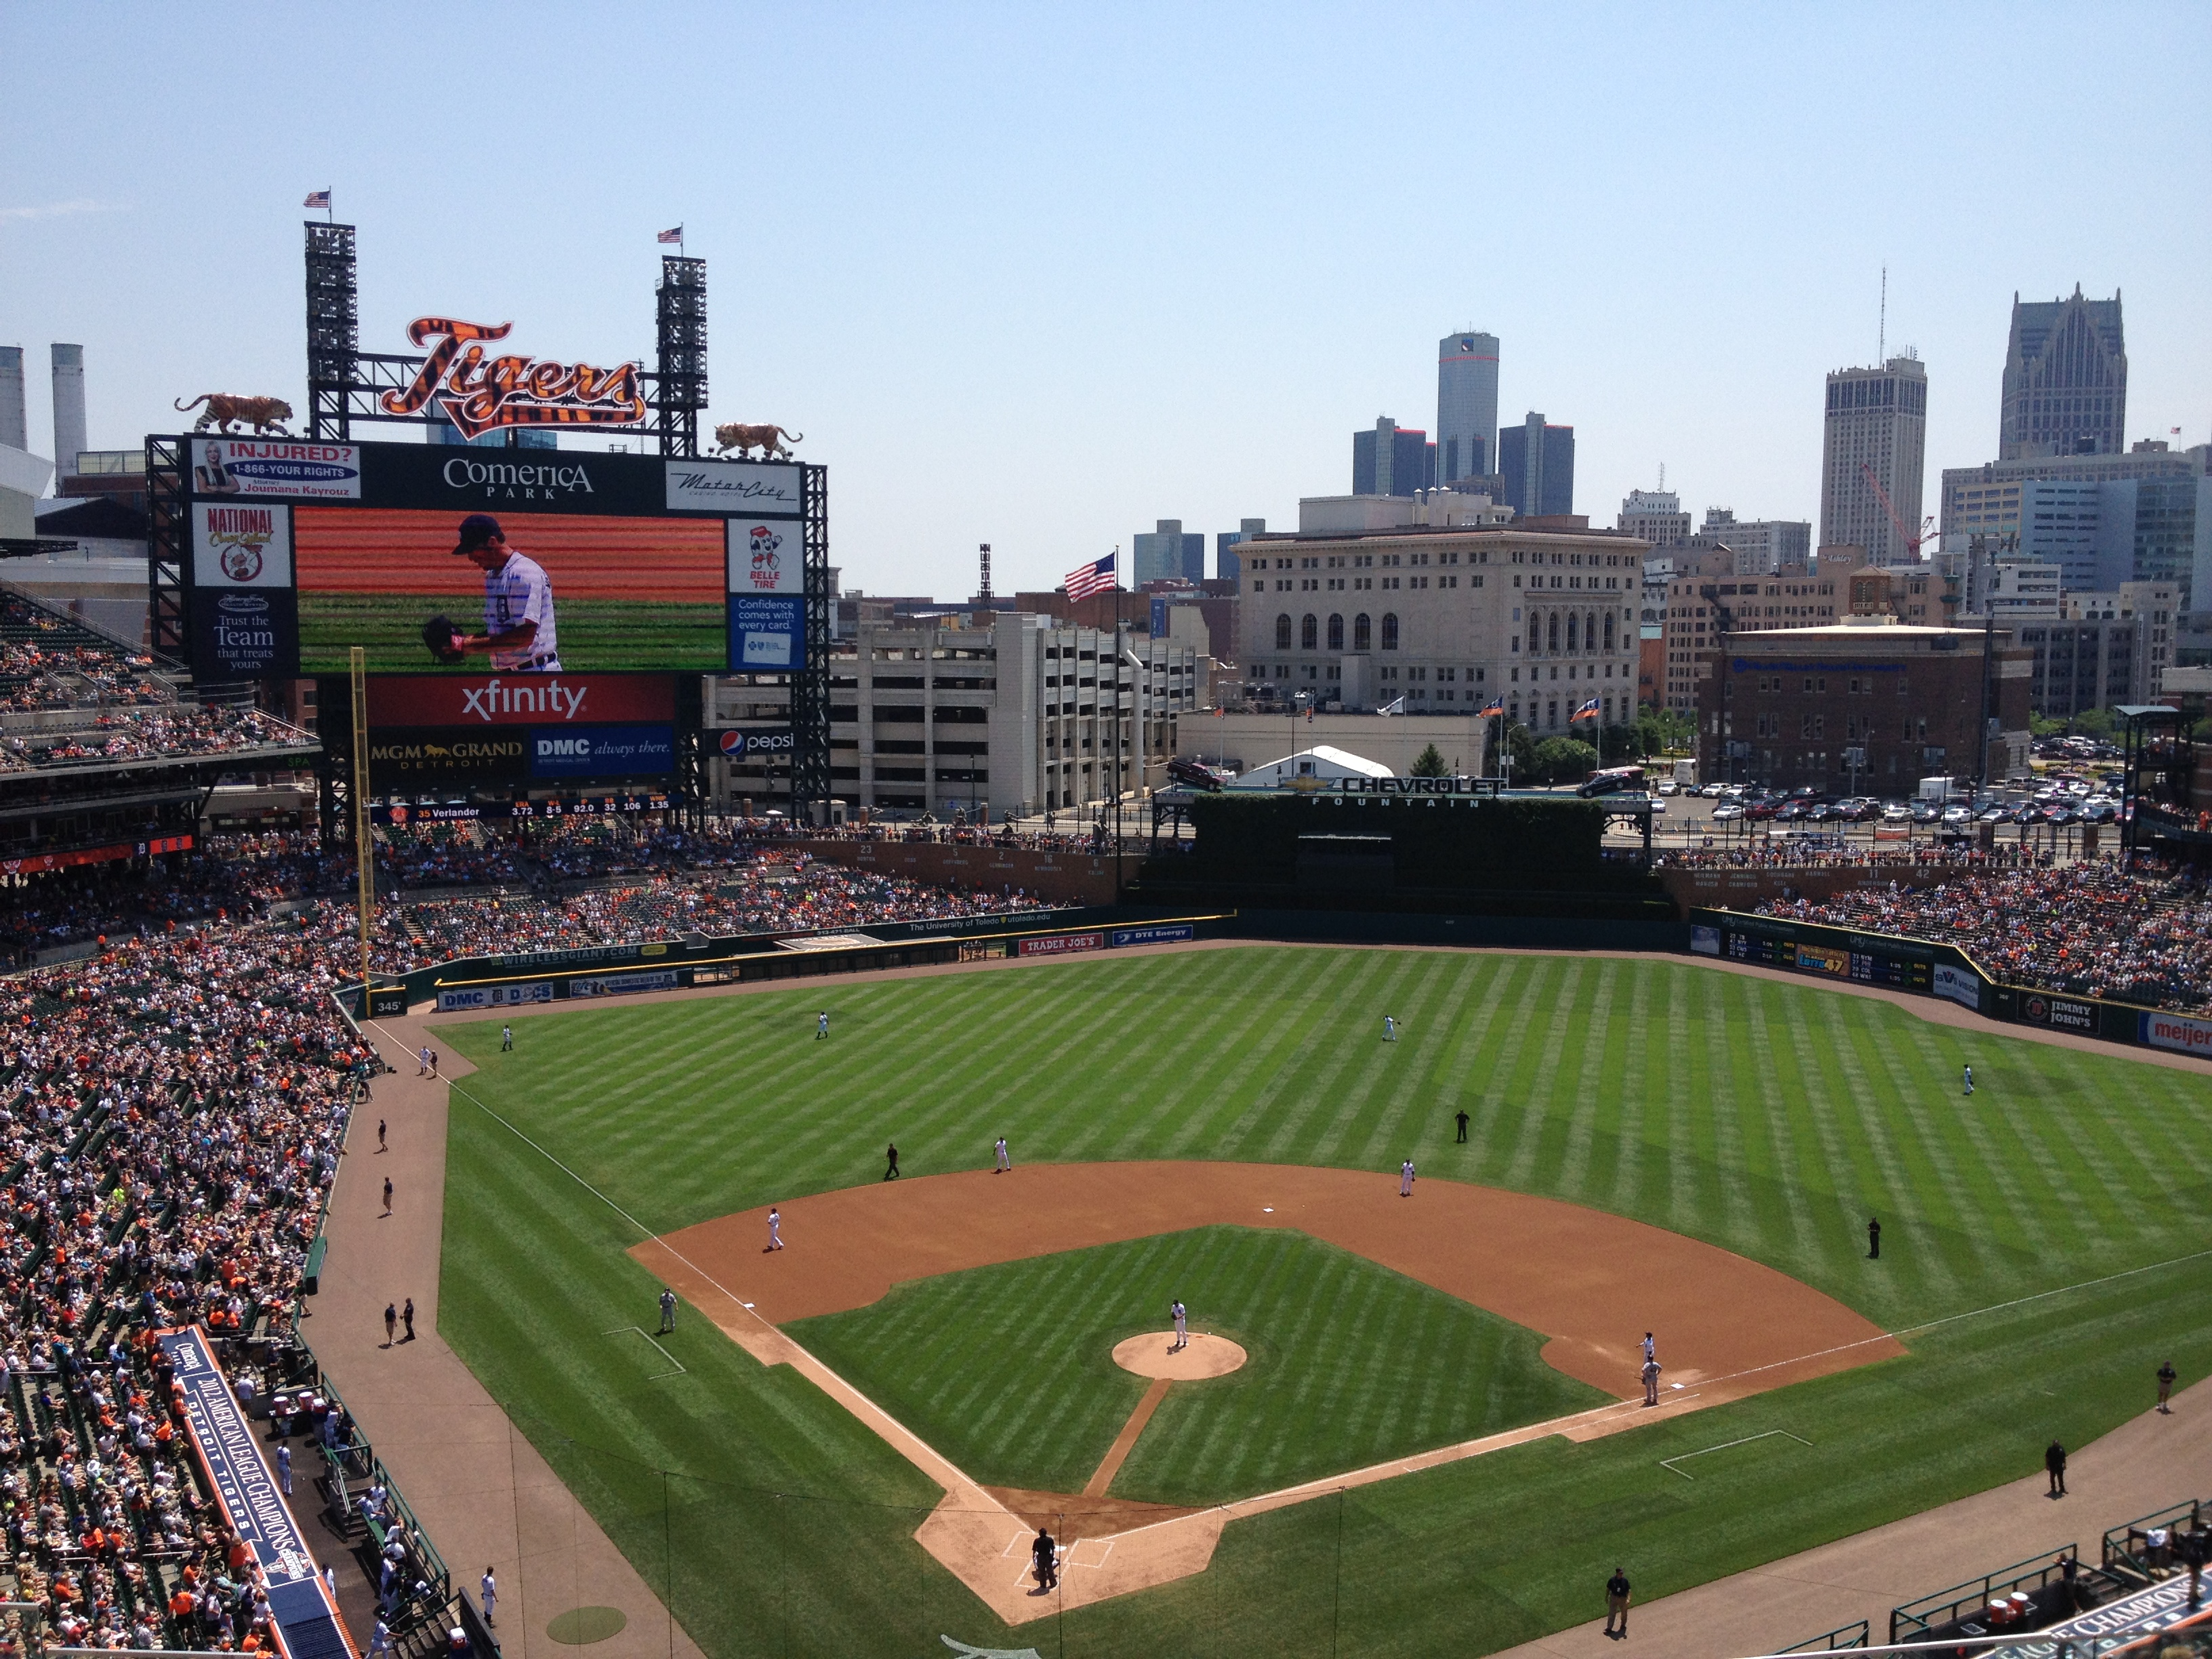 f5e60b01186c8a Spring Training Starts Soon for Rebuilding Tigers   WDET